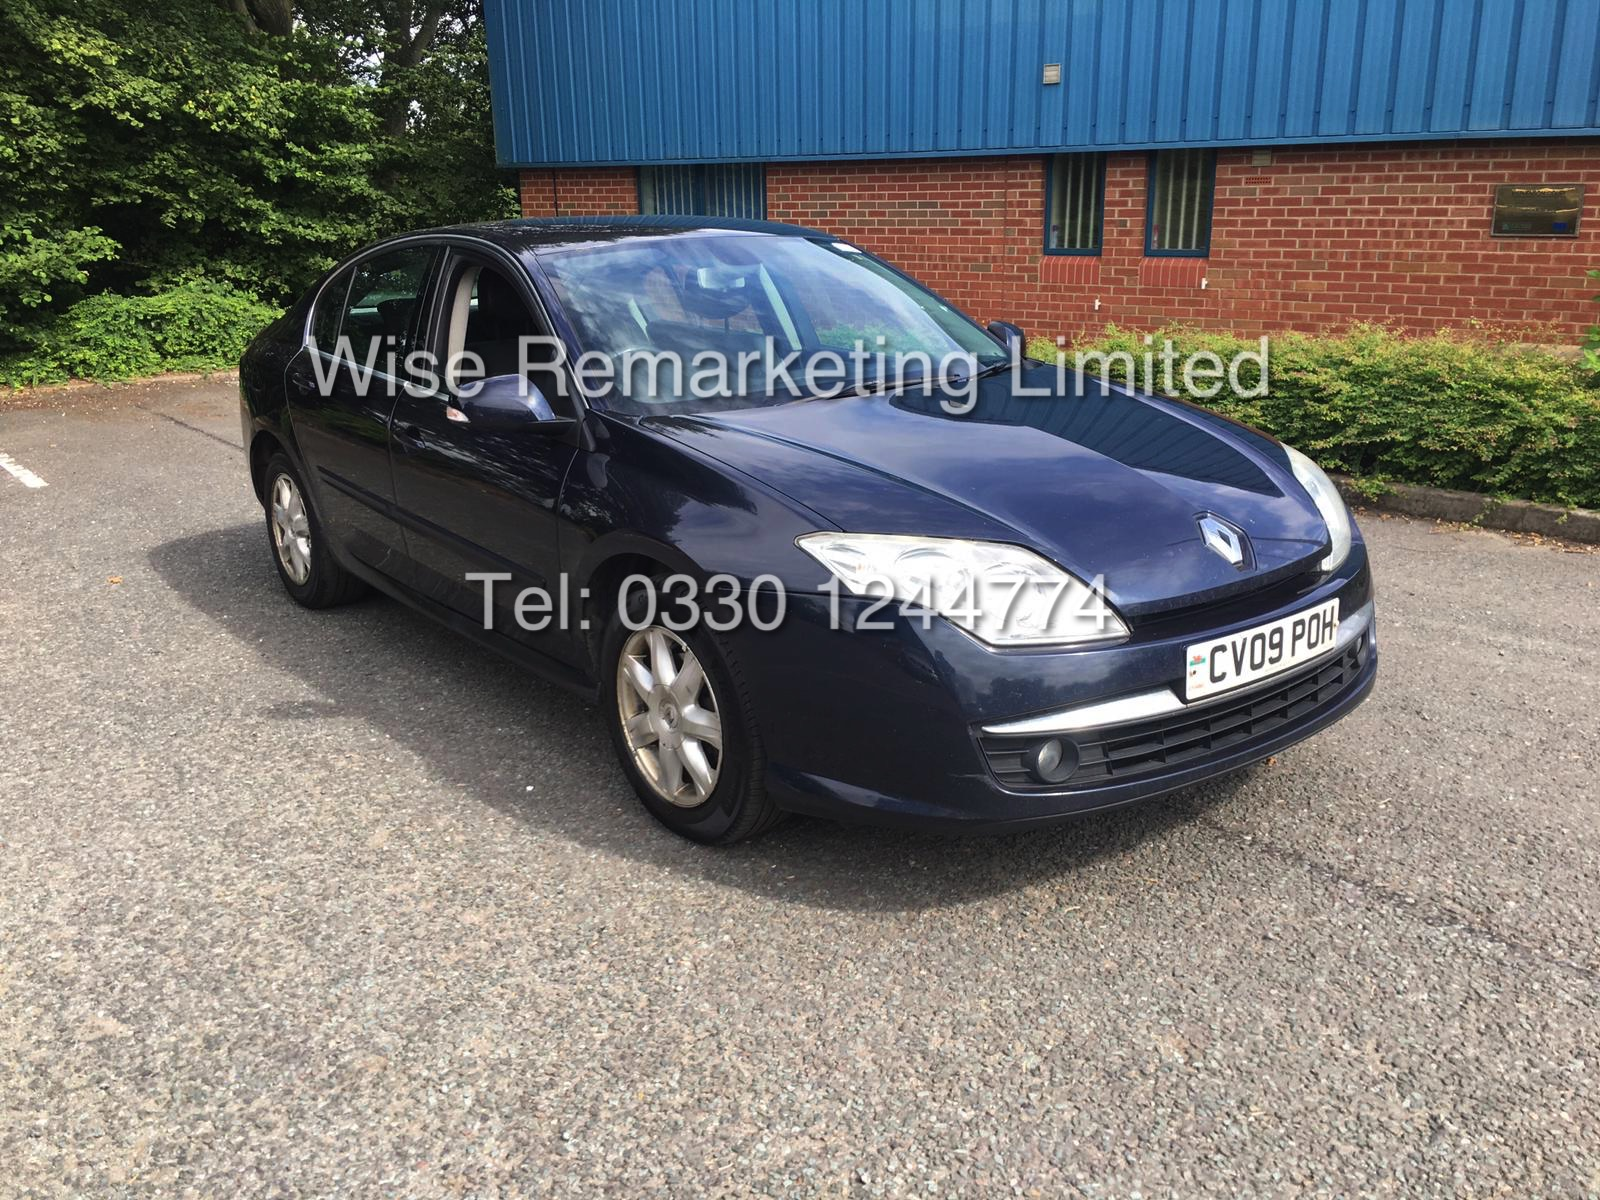 Lot 24 - RENAULT LAGUNA DYNAMIQUE 1.5 DCI 2009 - FSH - 1 OWNER FROM NEW